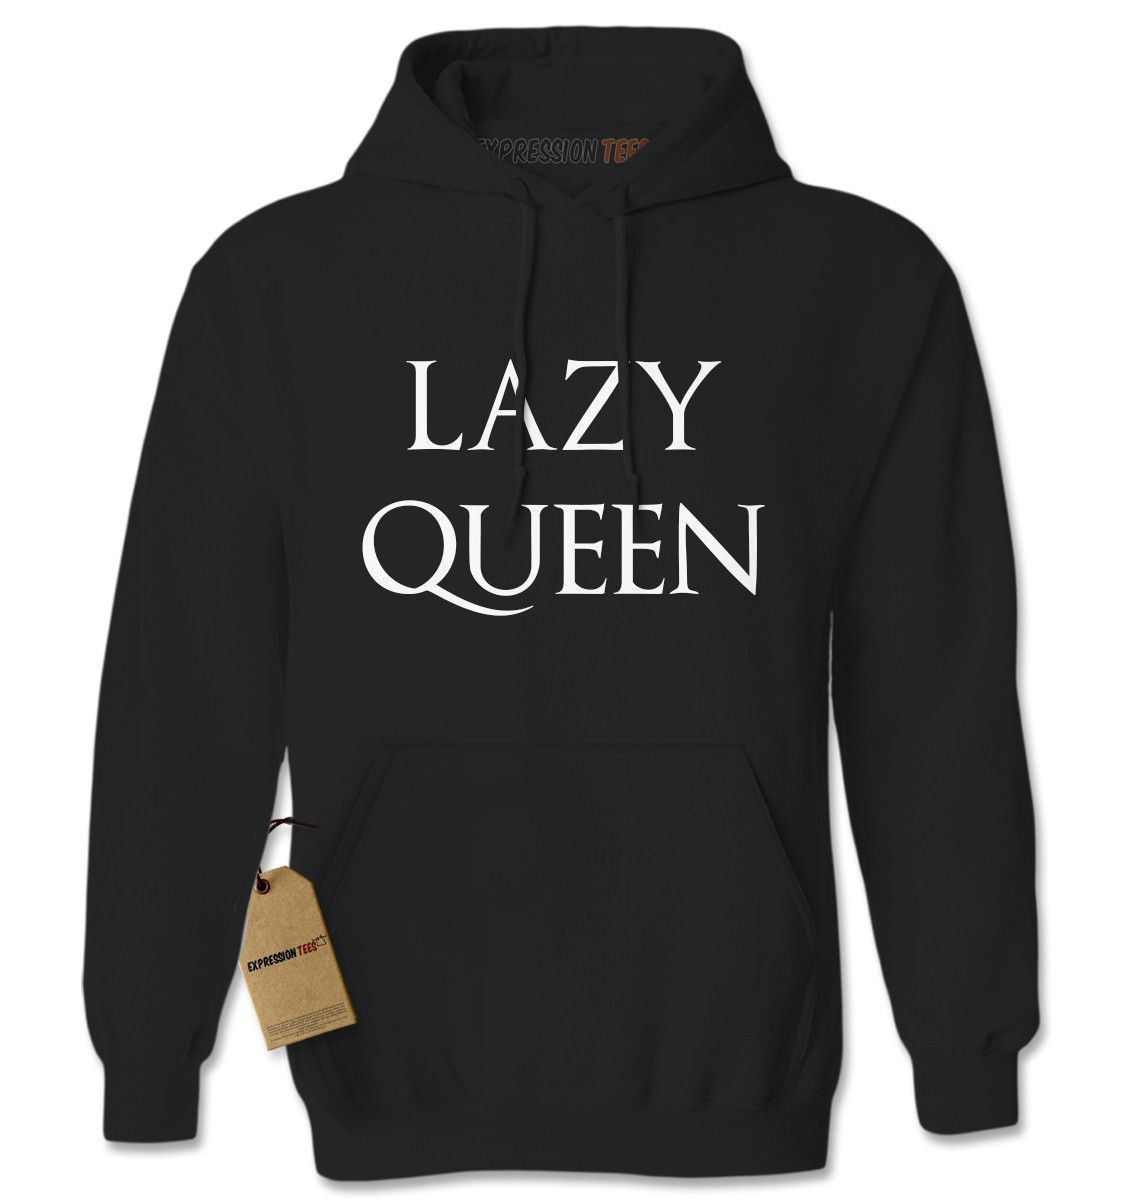 Lazy Queen Adult Hoodie Sweatshirt